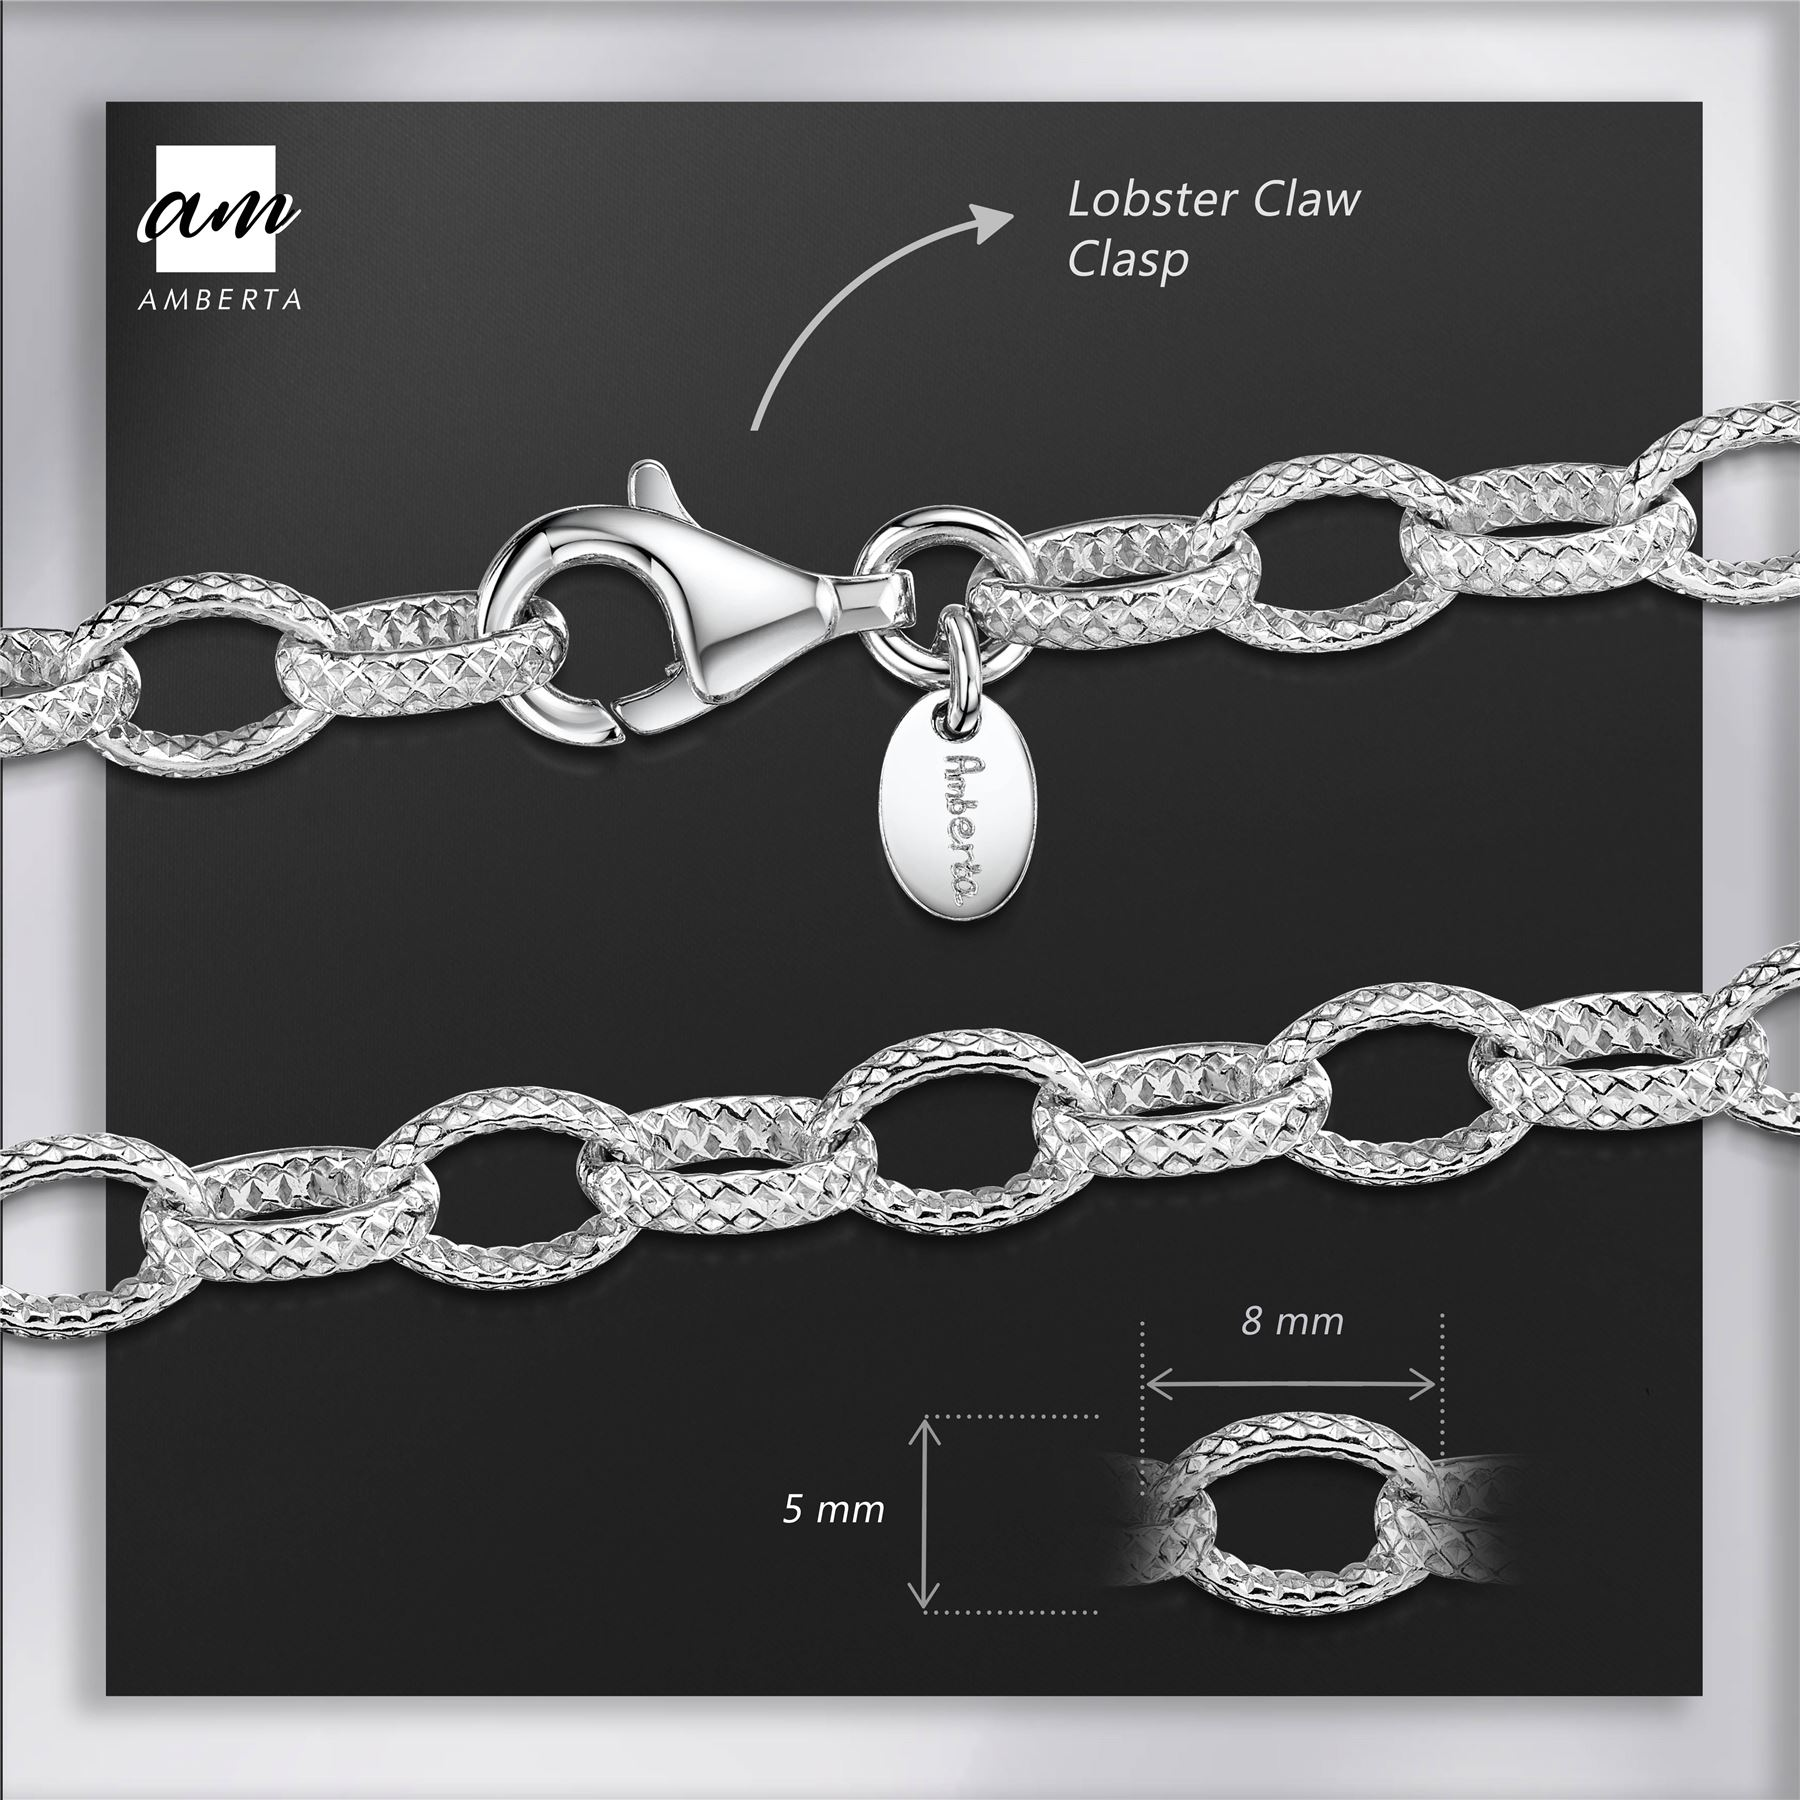 Amberta-Genuine-Real-925-Sterling-Silver-Chain-Bracelet-for-Women-from-Italy miniature 29